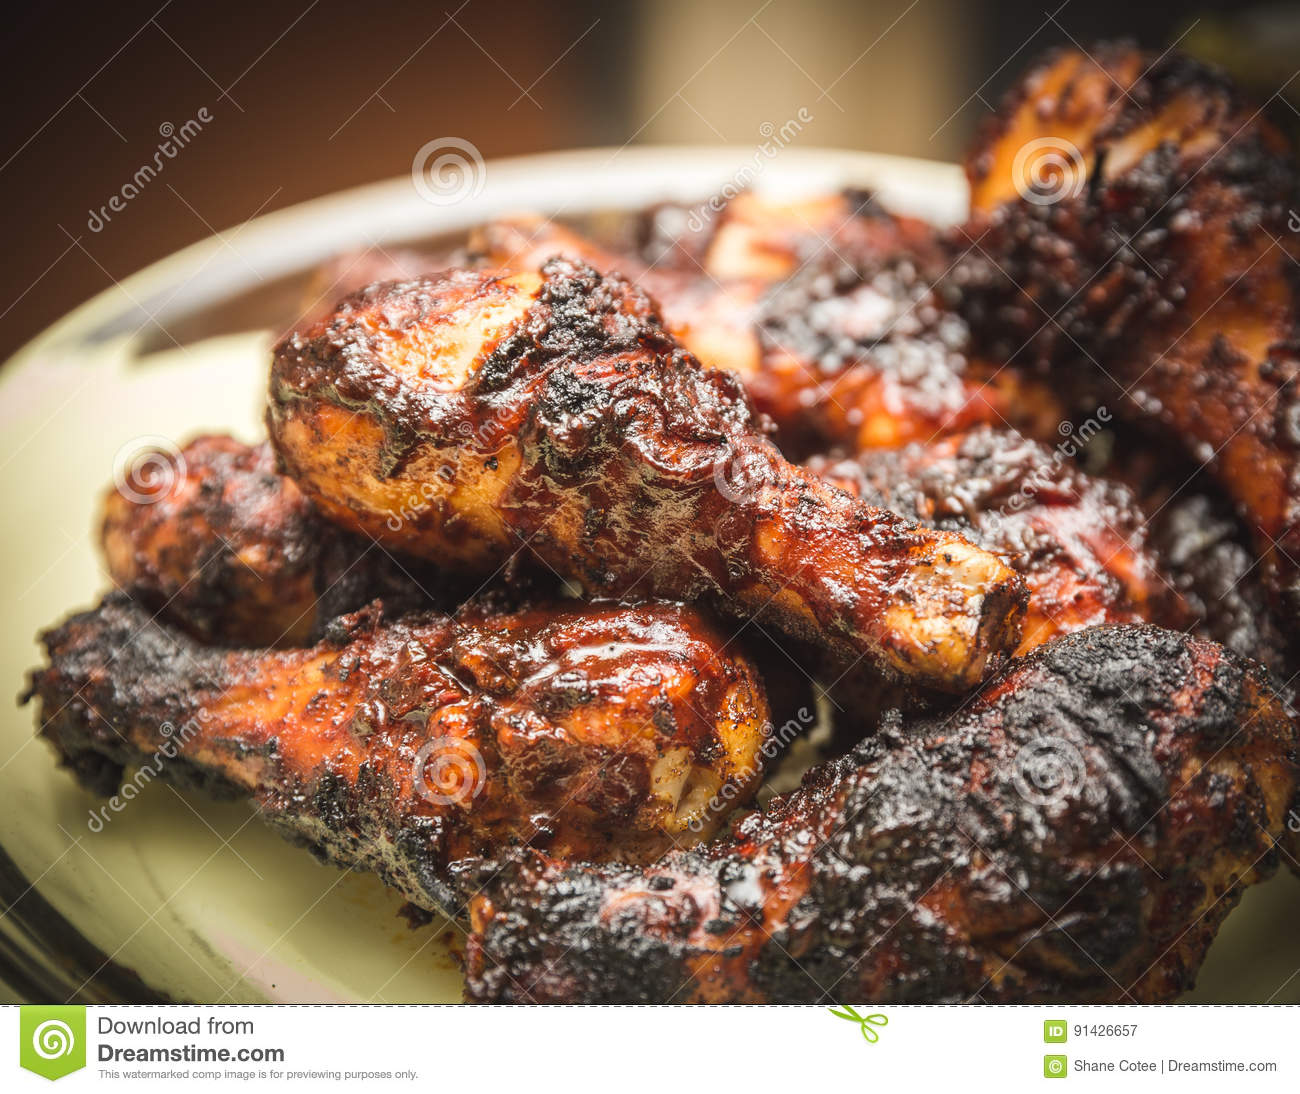 Barbecued Chicken with Sauce and Spices